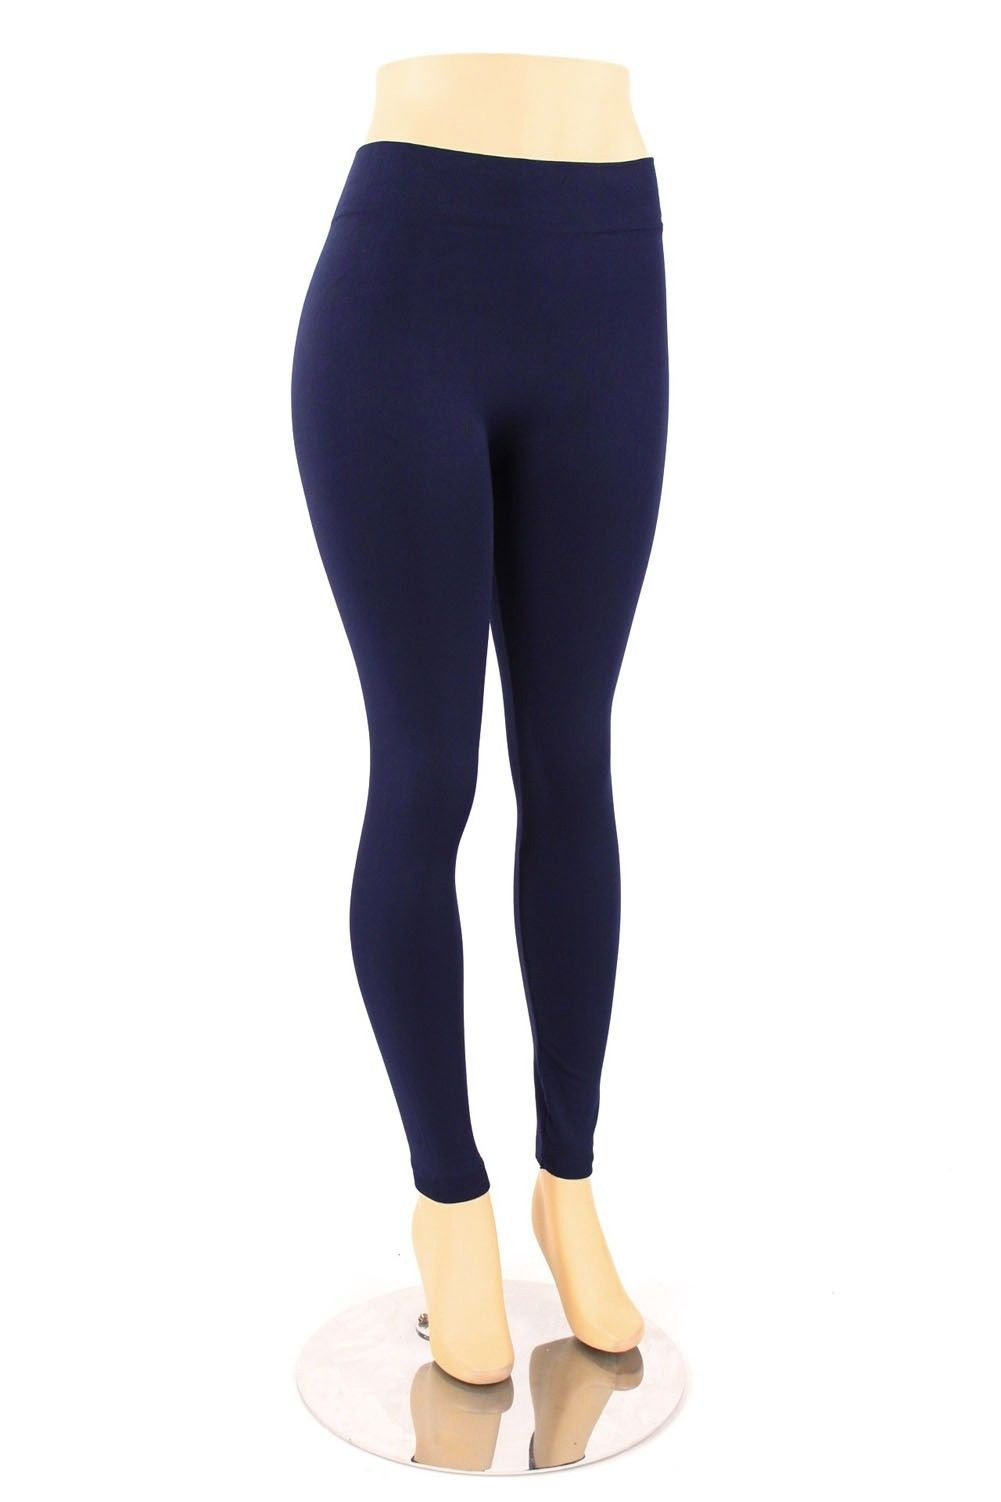 Thick Leggings Look stylish even when the temperatures drop by accessorizing a fashion ensemble with a pair of thick leggings. Available in a variety of styles and colors, these juniors and women's leggings are perfect for providing a stylish extra layer of clothing for when the nights get chilly.